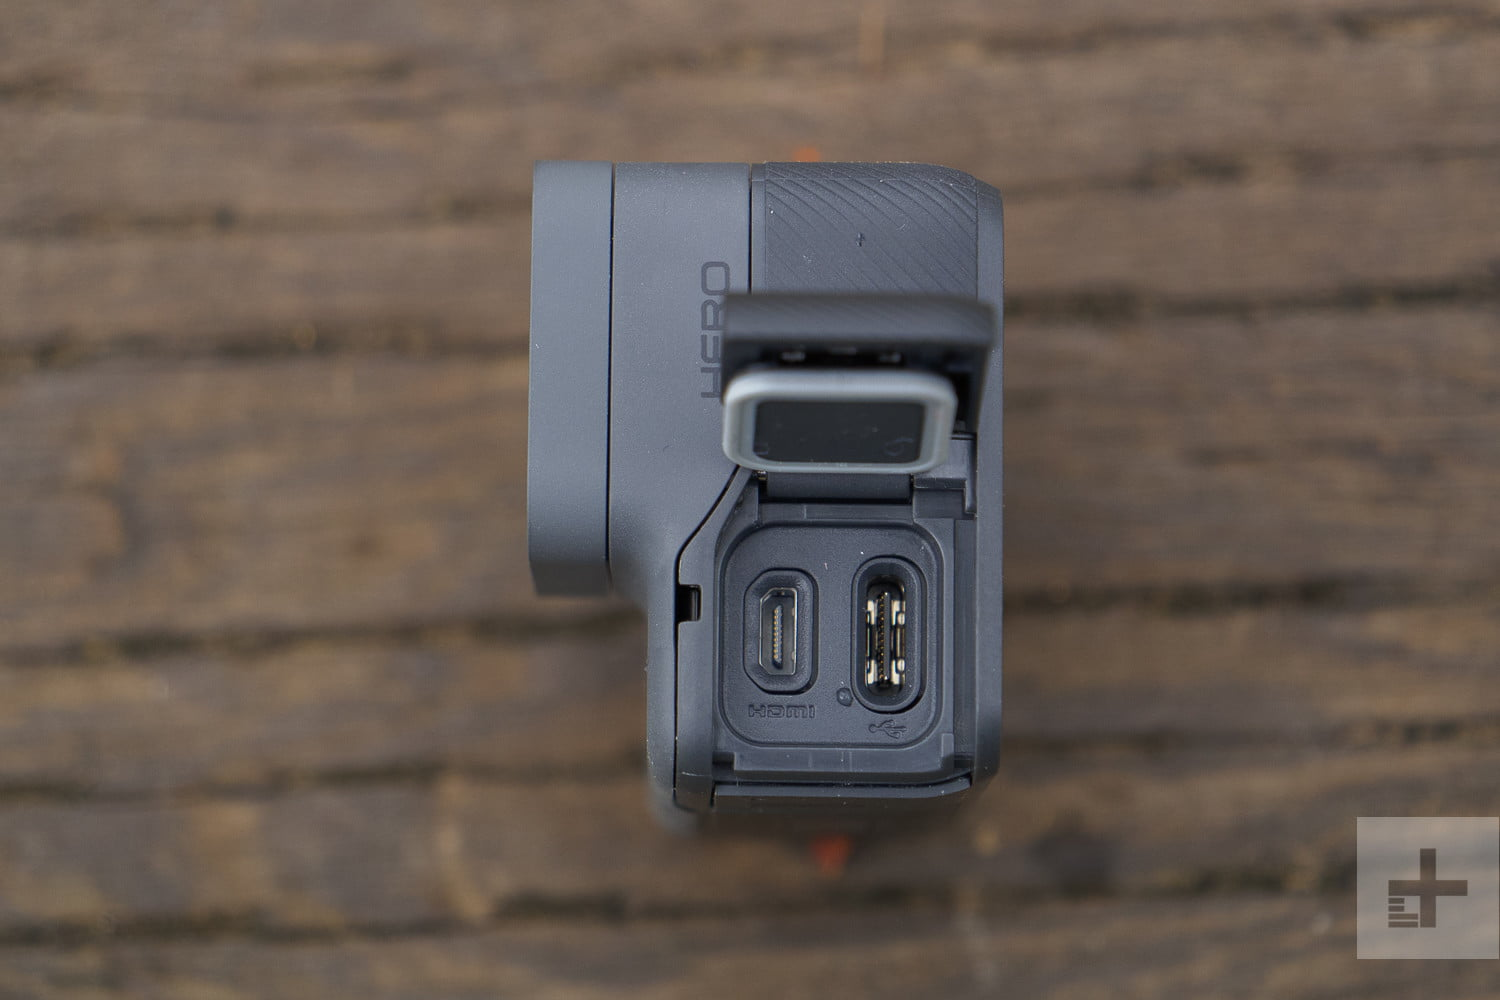 GoPro Hero (2018) Review | All the Hero Casual Users Need | Digital